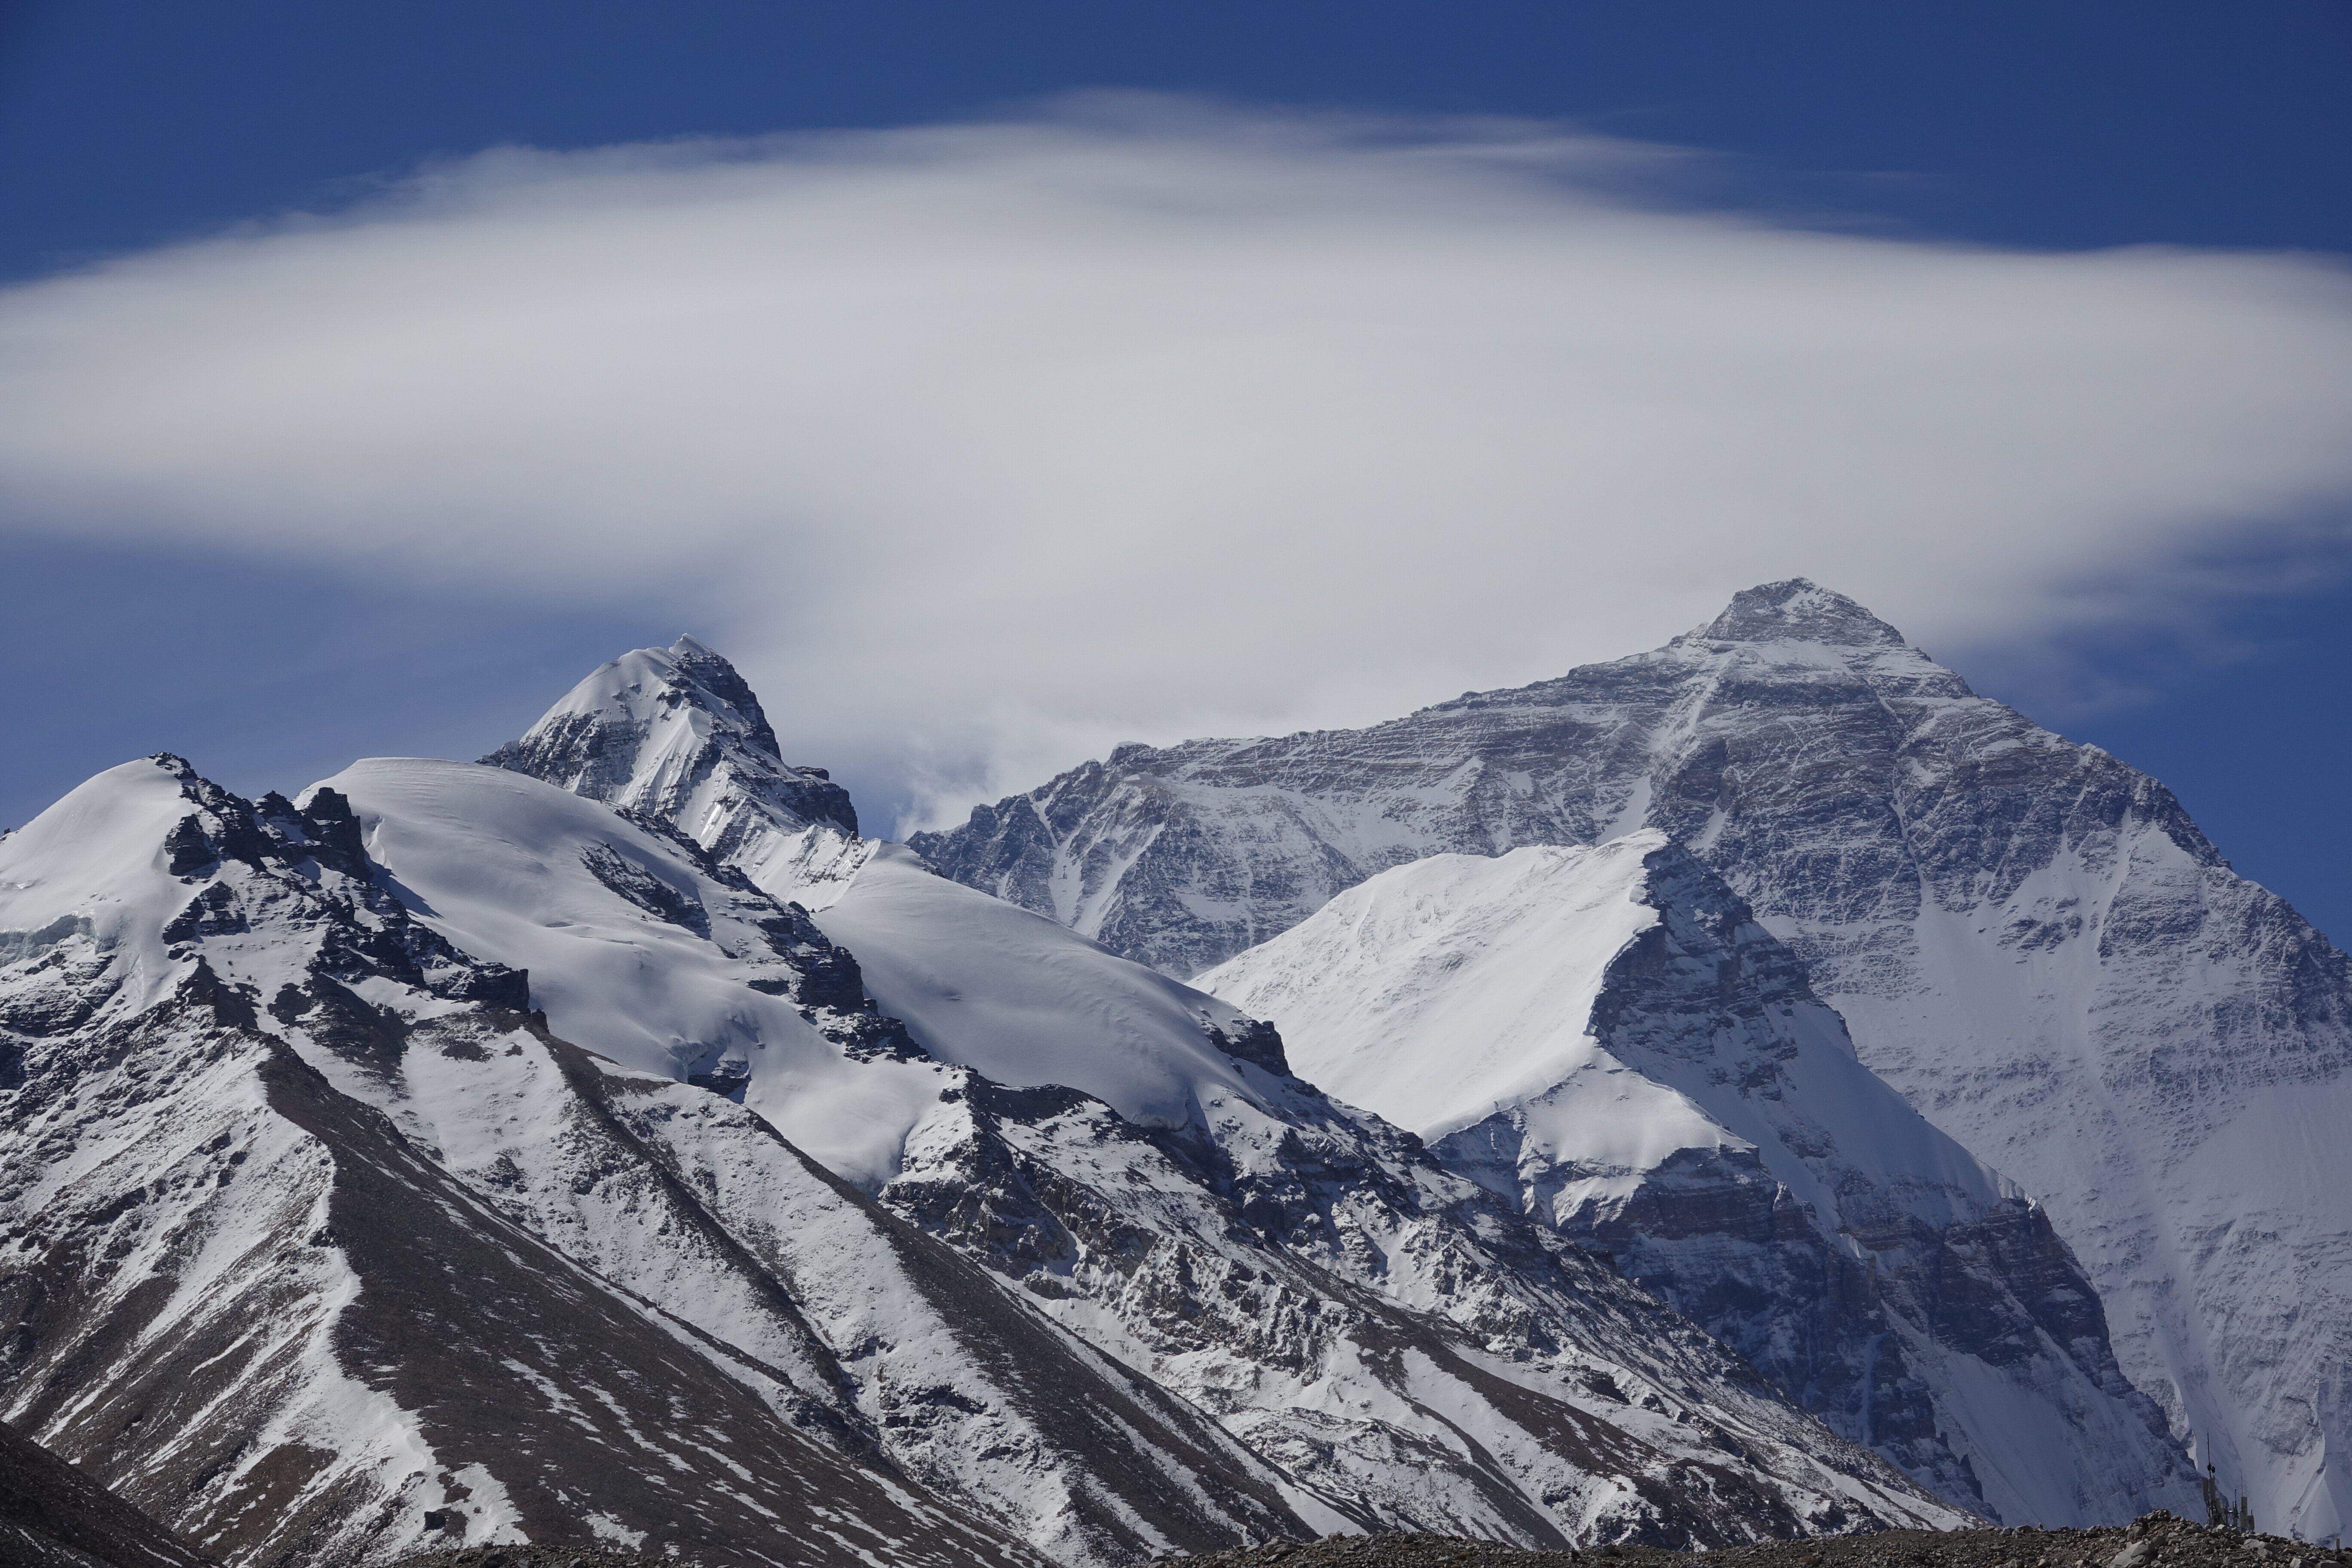 Mount Everest is pictured on May 9, 2021 in Shigatse, Tibet Autonomous Region of China. (Photo by Ran Wenjuan/China News Serv